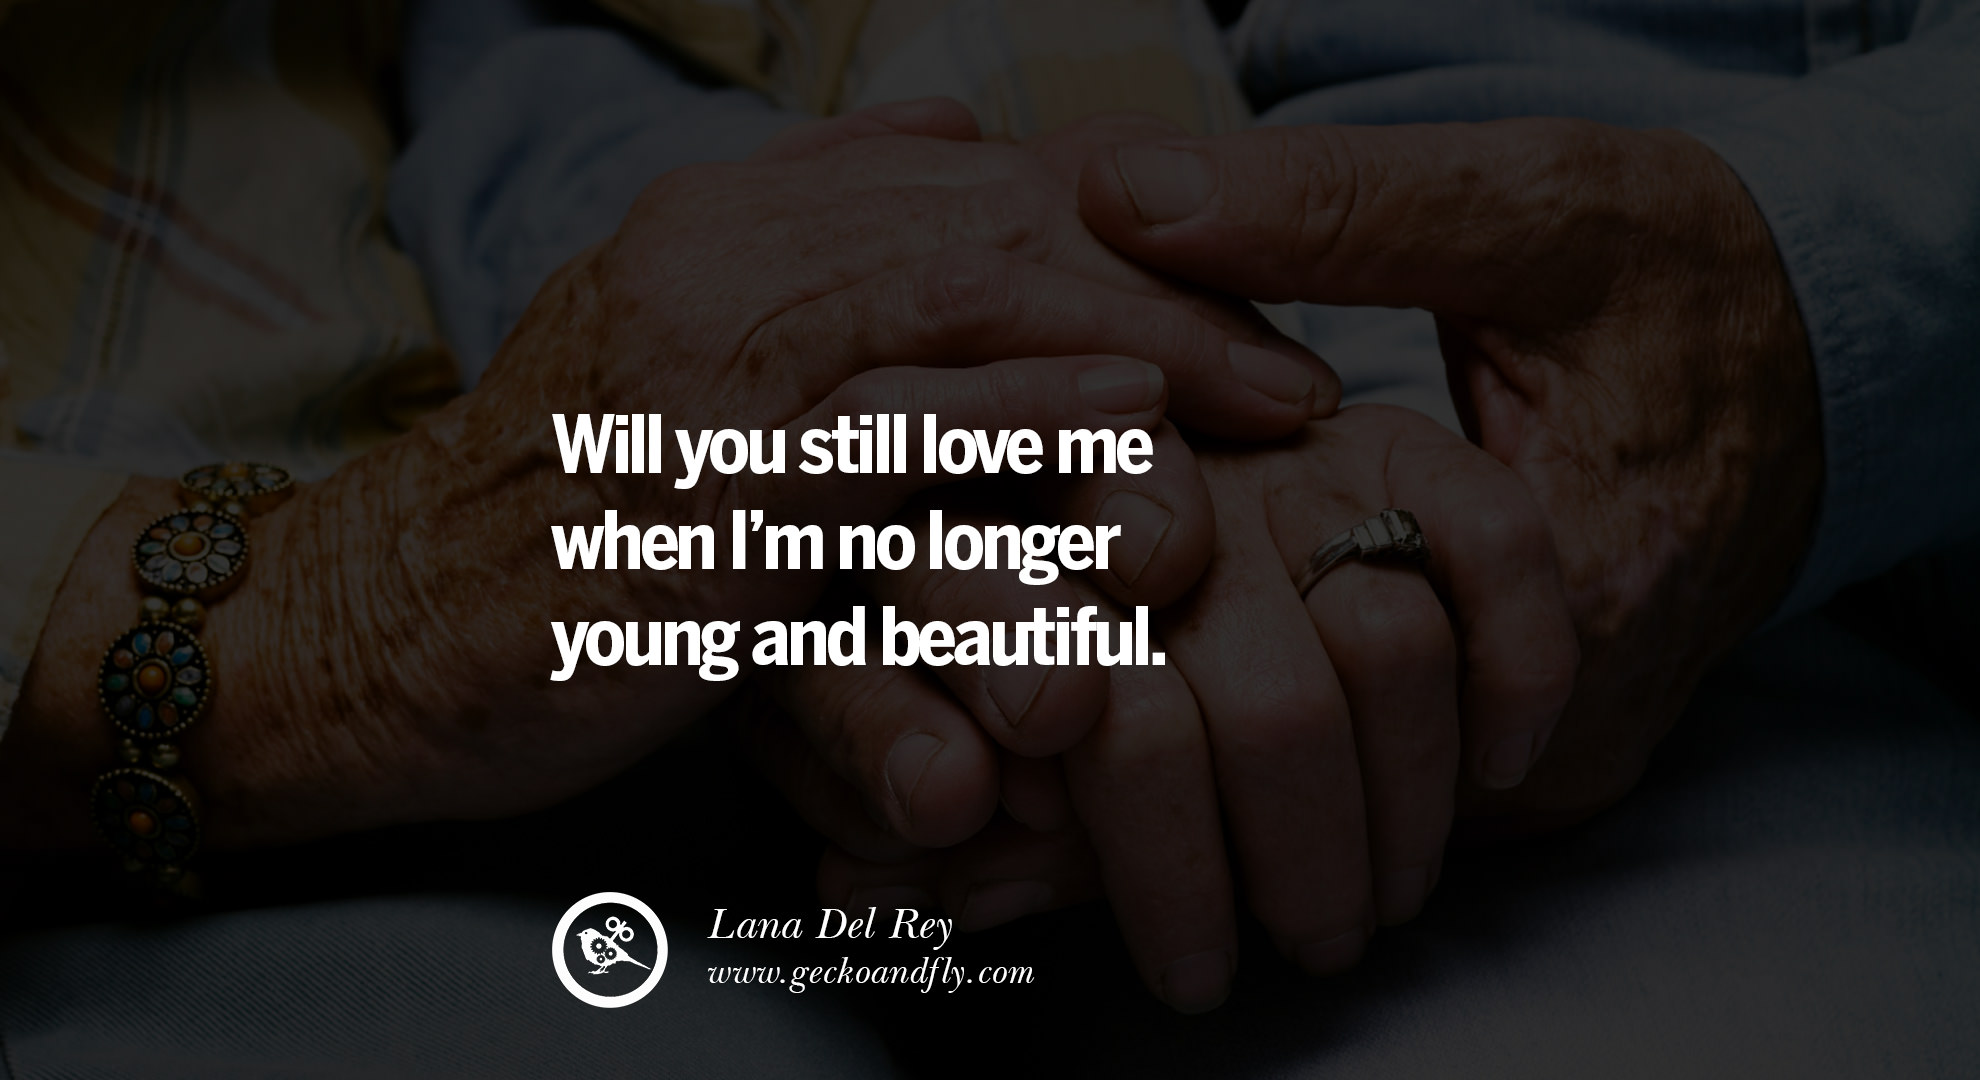 Quotes About Love And Relationships Custom 40 Romantic Quotes About Love Life Marriage And Relationships